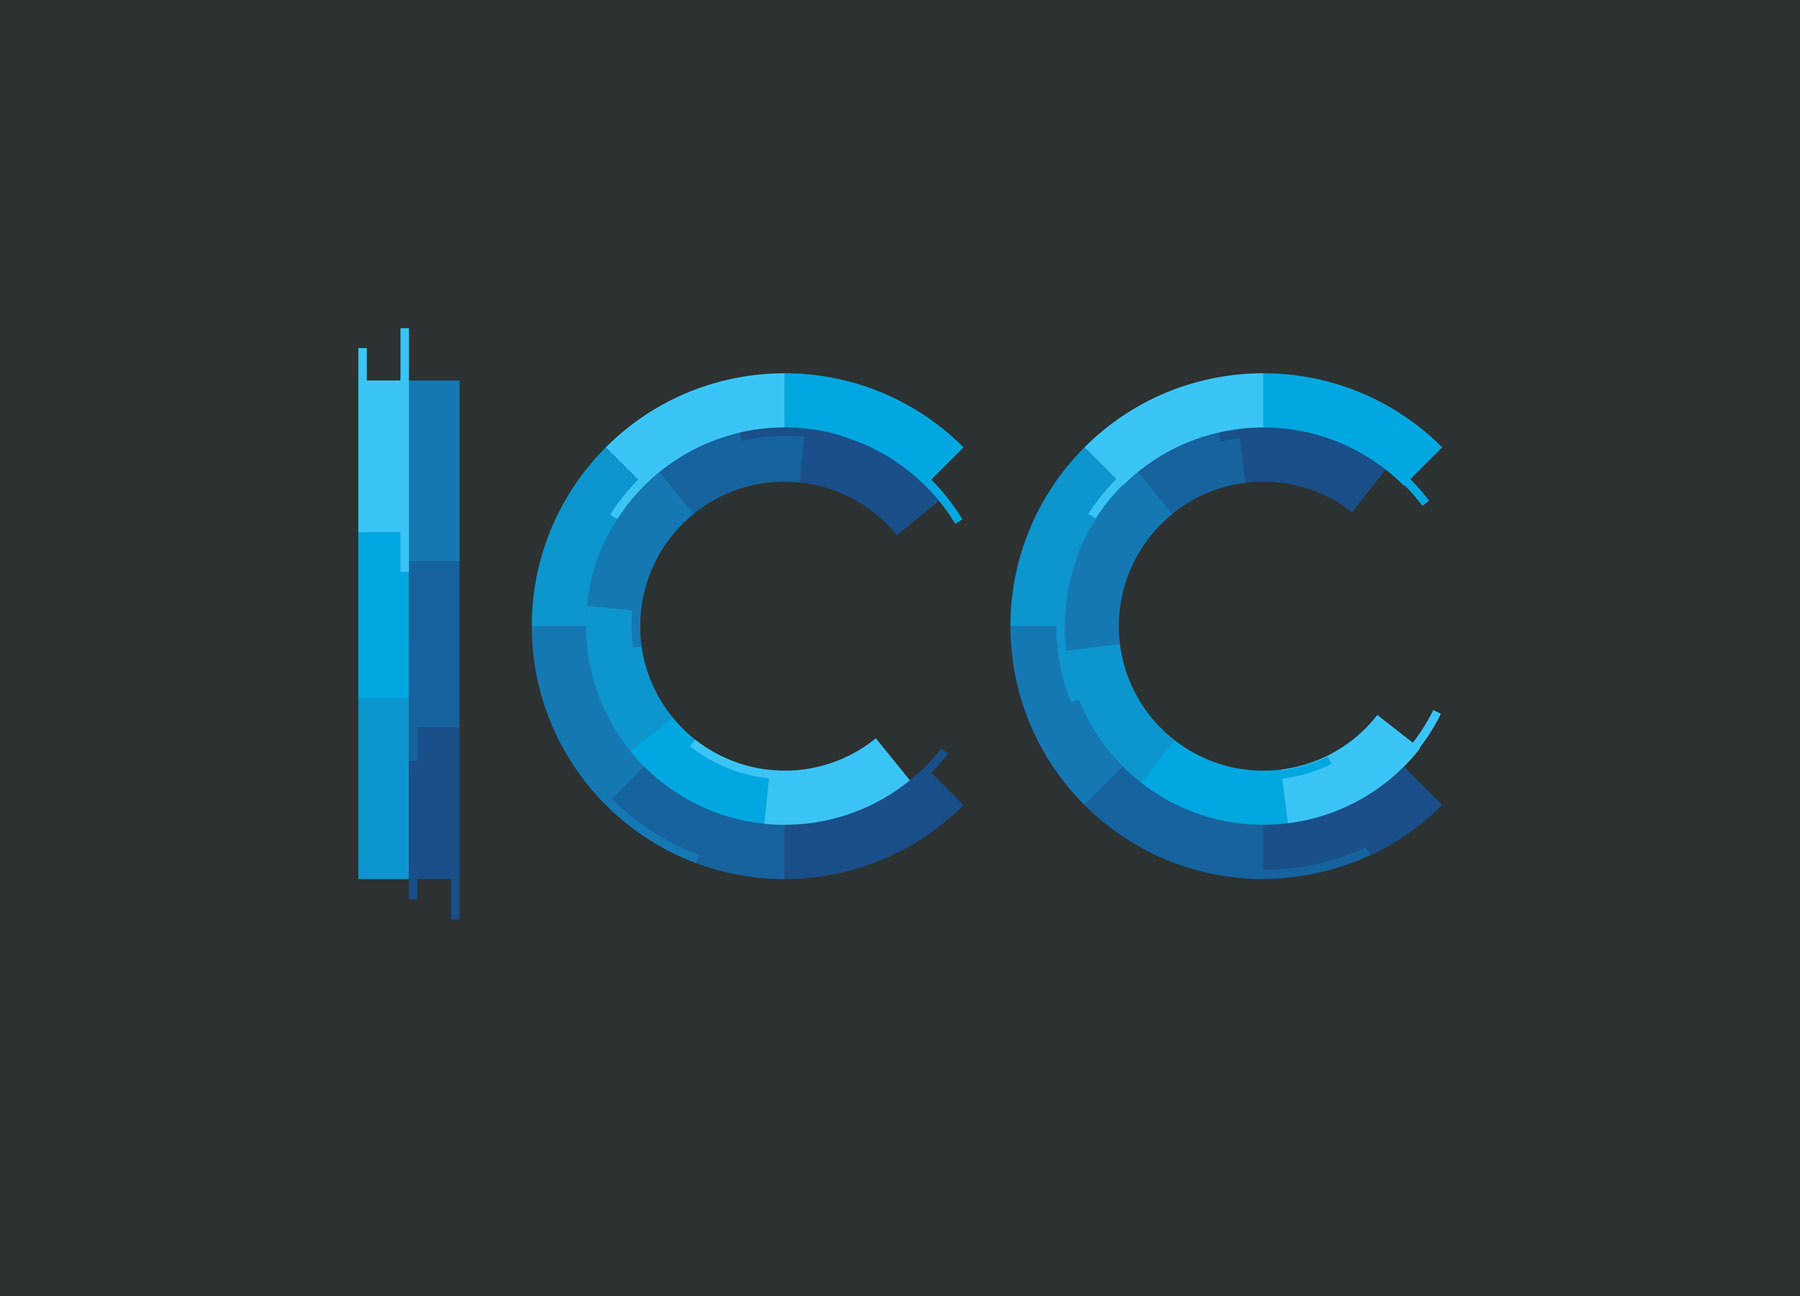 Distinctive new logo for ICC, an innovative wealth management firm based in Las Vegas. Design by BigMouth in San Francisco.